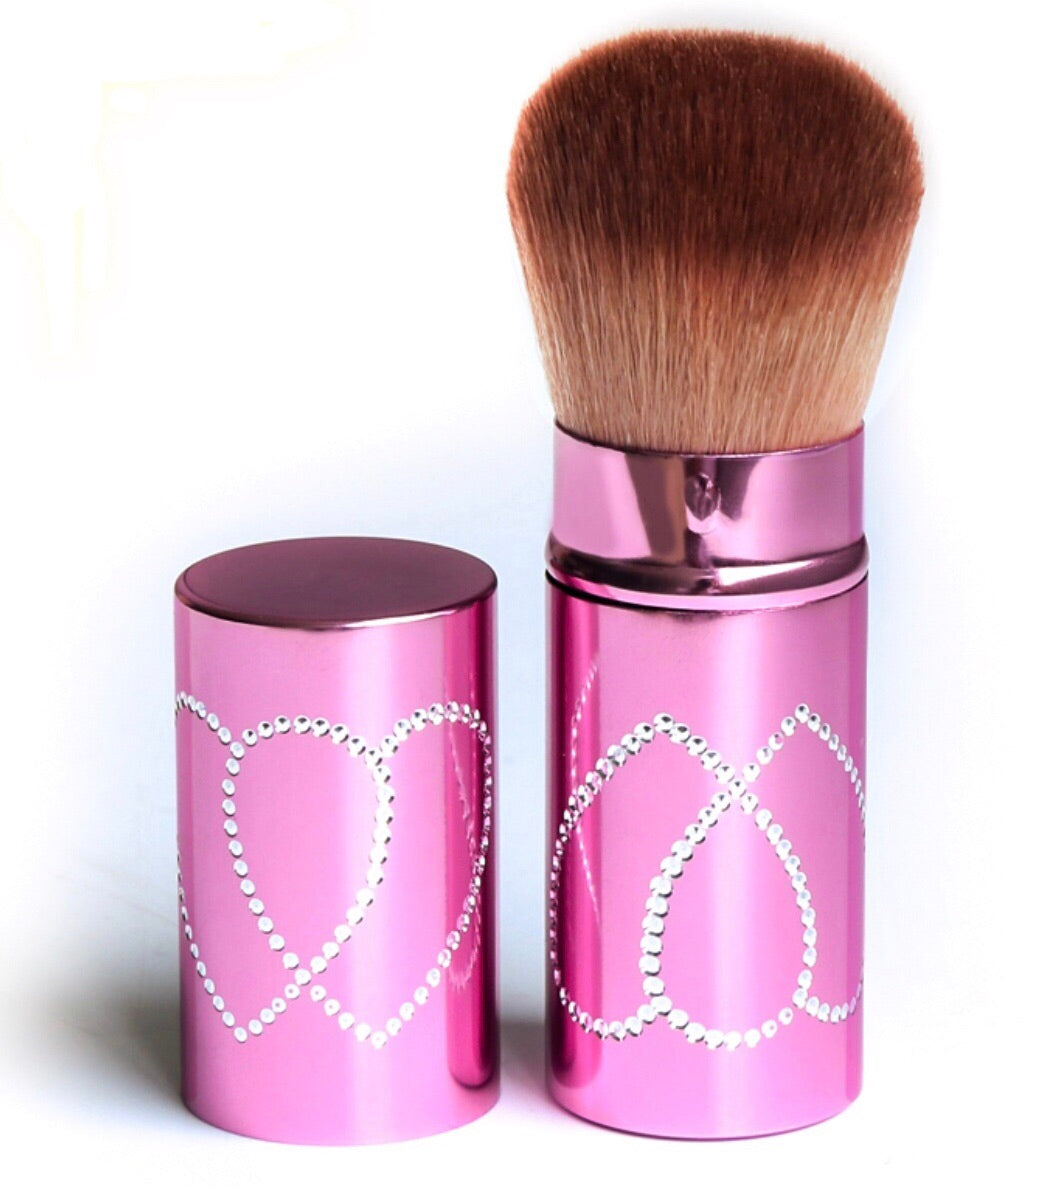 Fancy Kabuki brush with heart crystals